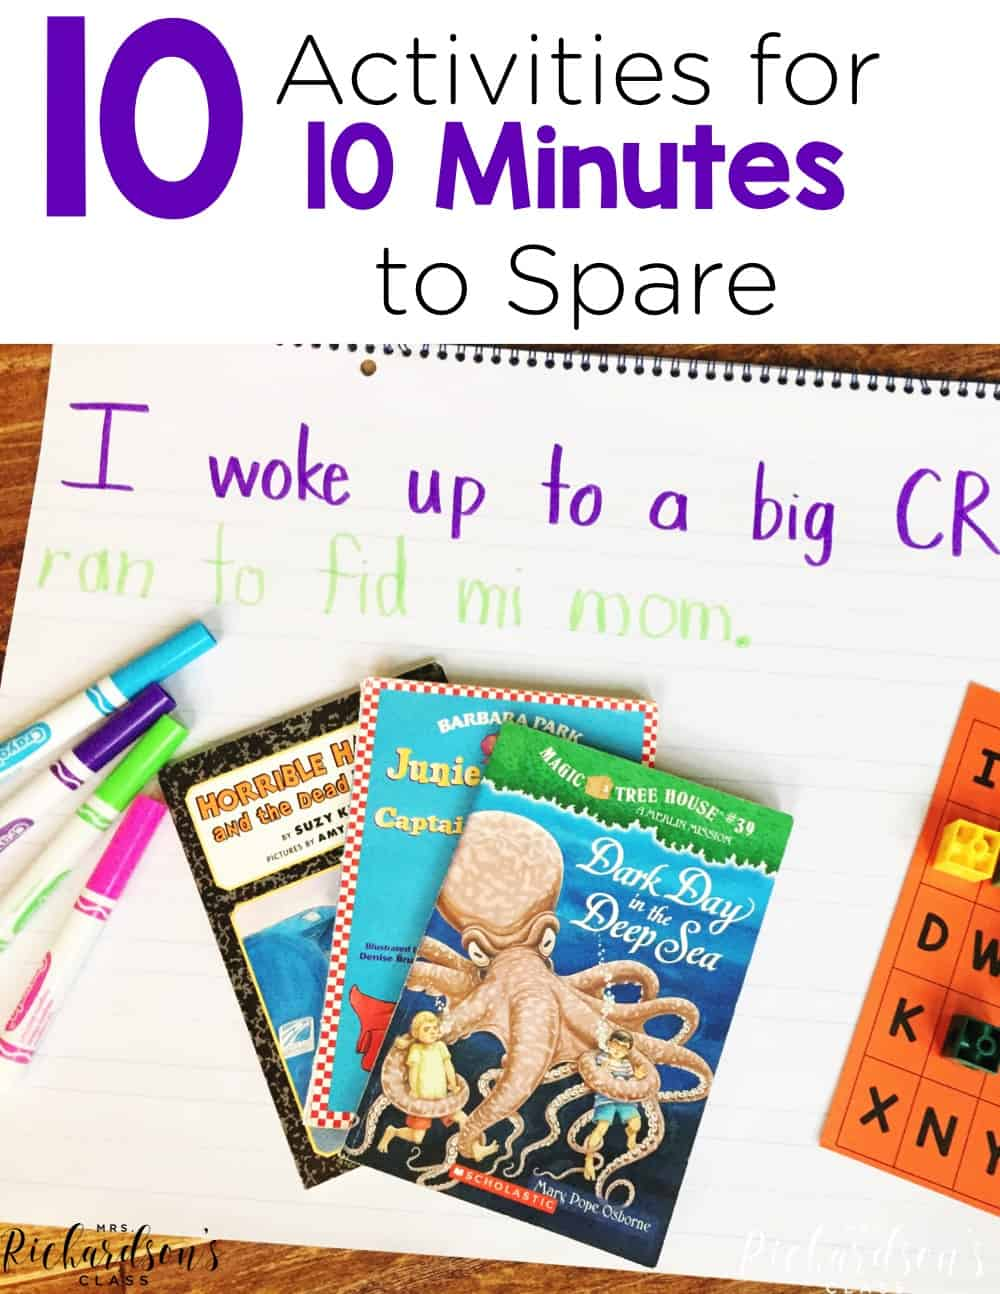 Often times teachers have a few minutes to spare here or there! Here are 10 meaningful activities you can do to fill a spare 10 minutes of time!